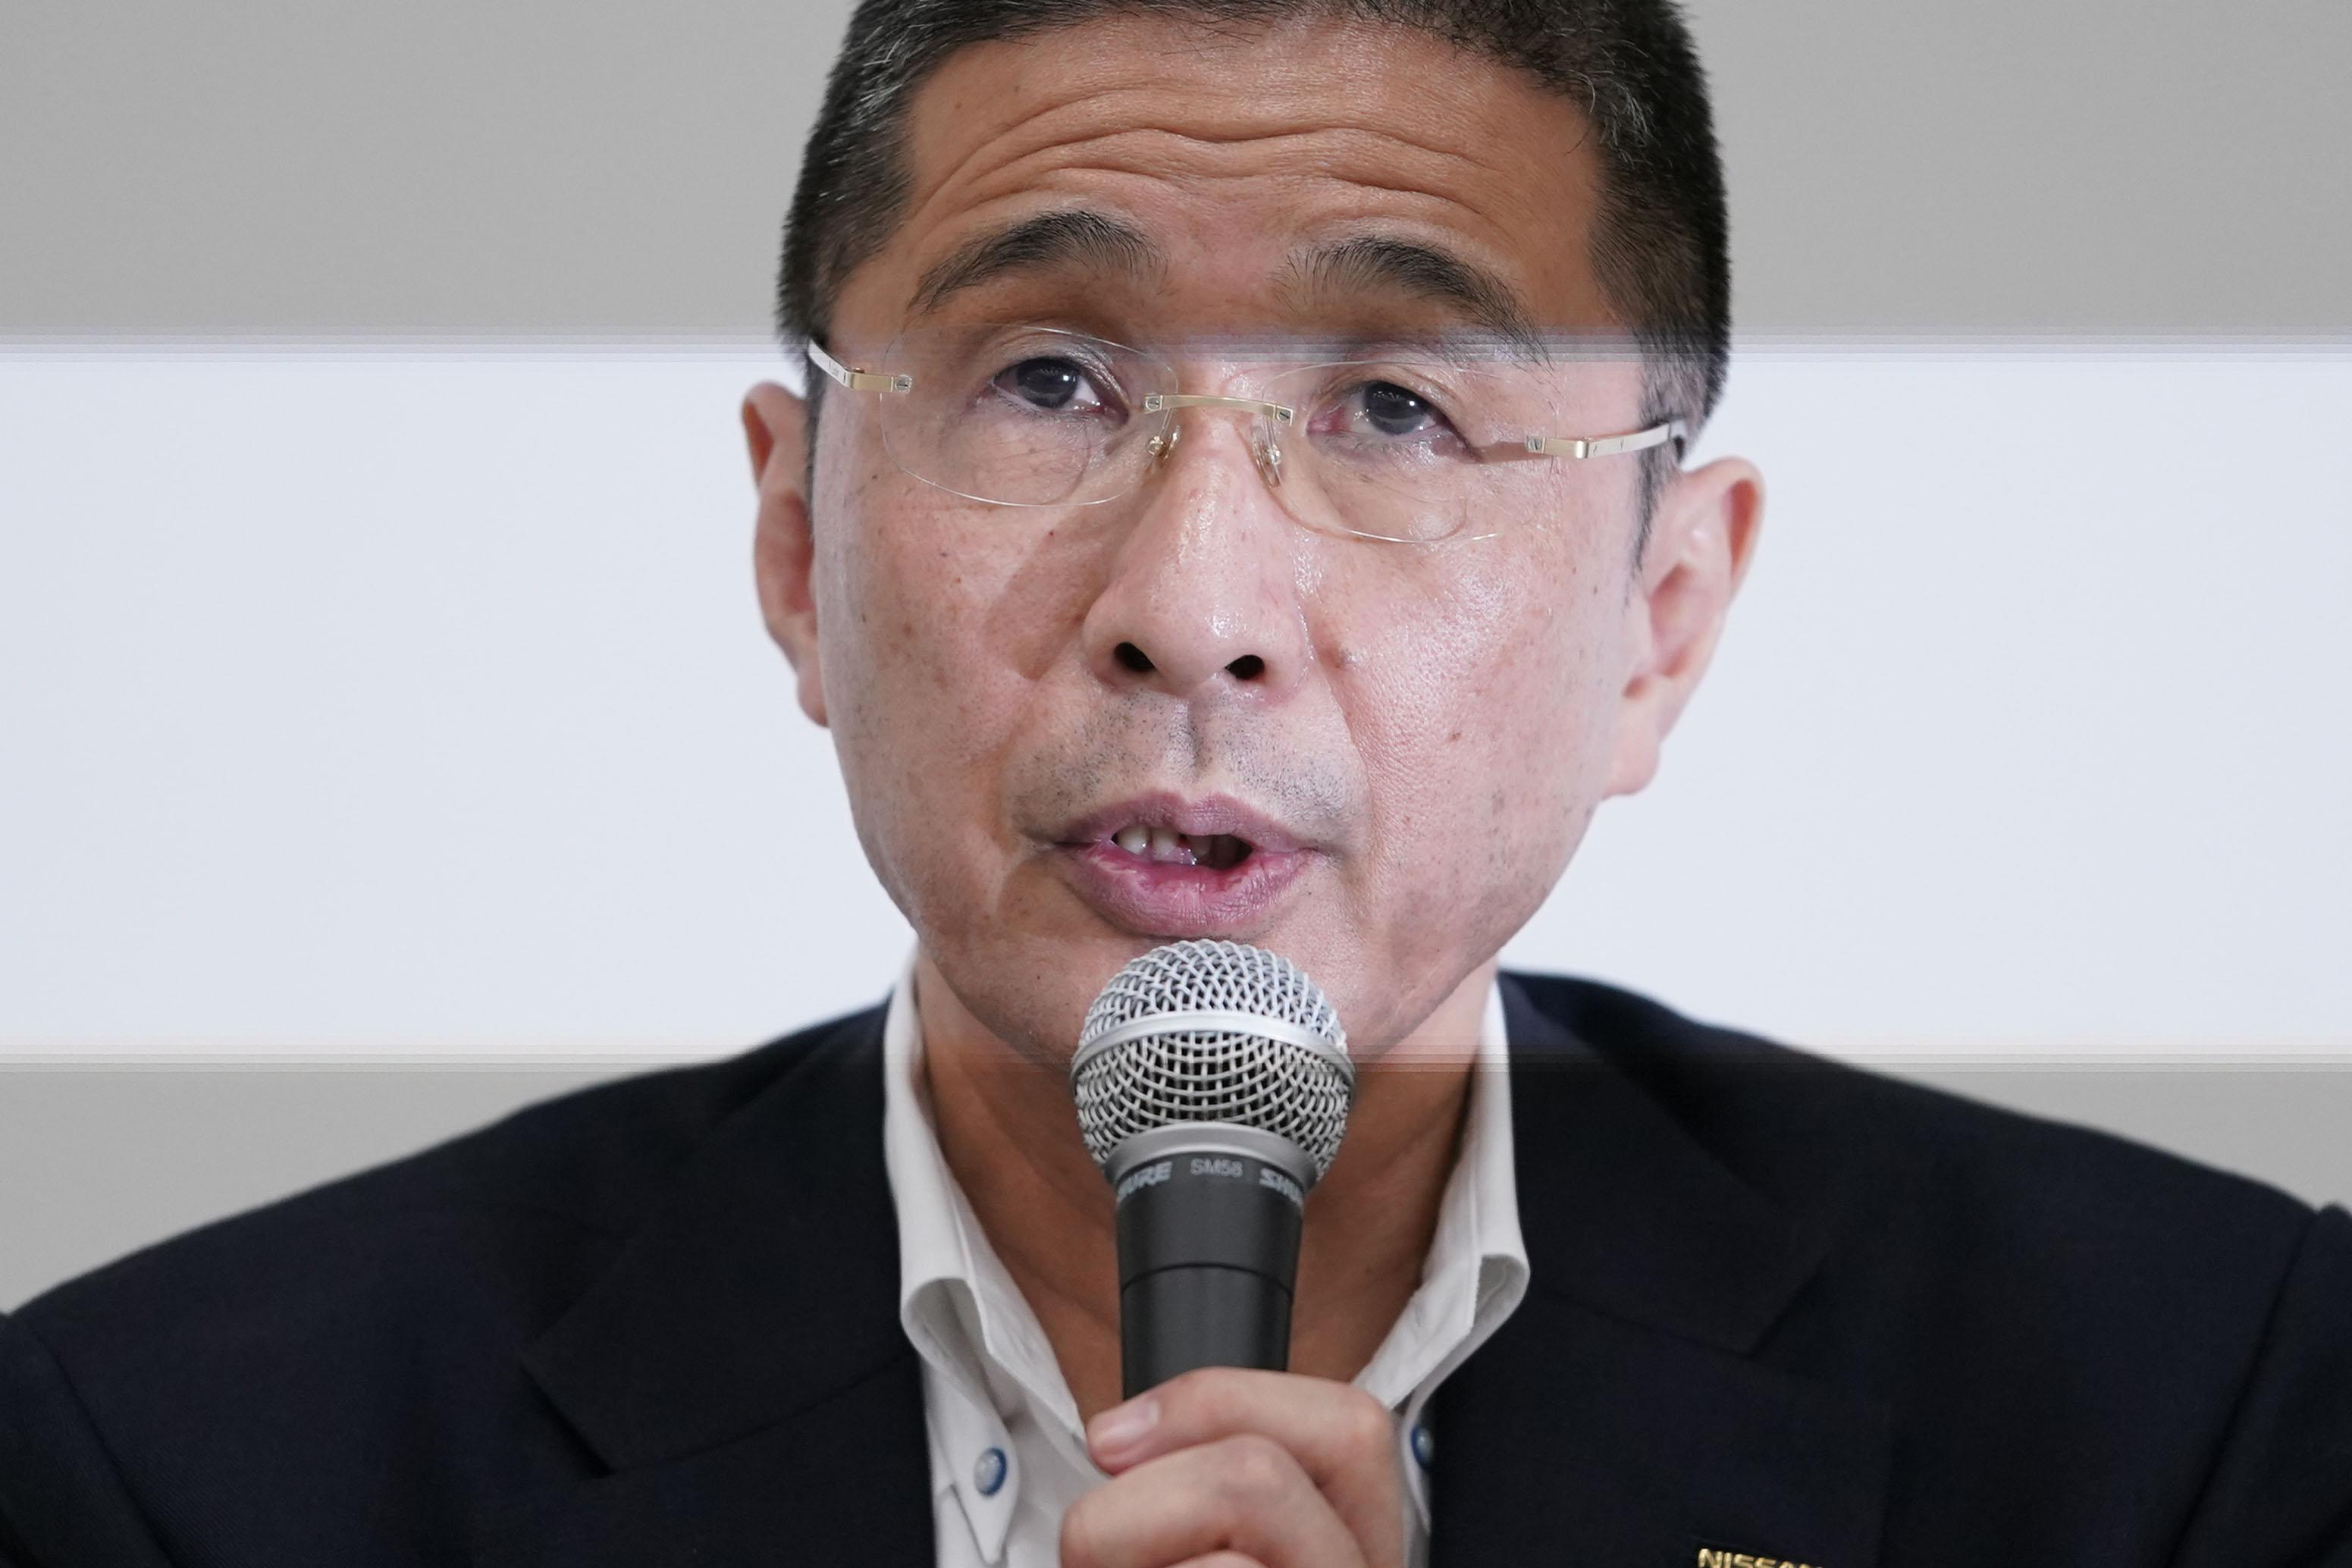 nissan-ousts-ceo-over-pay-scandal-as-turmoil-deepens